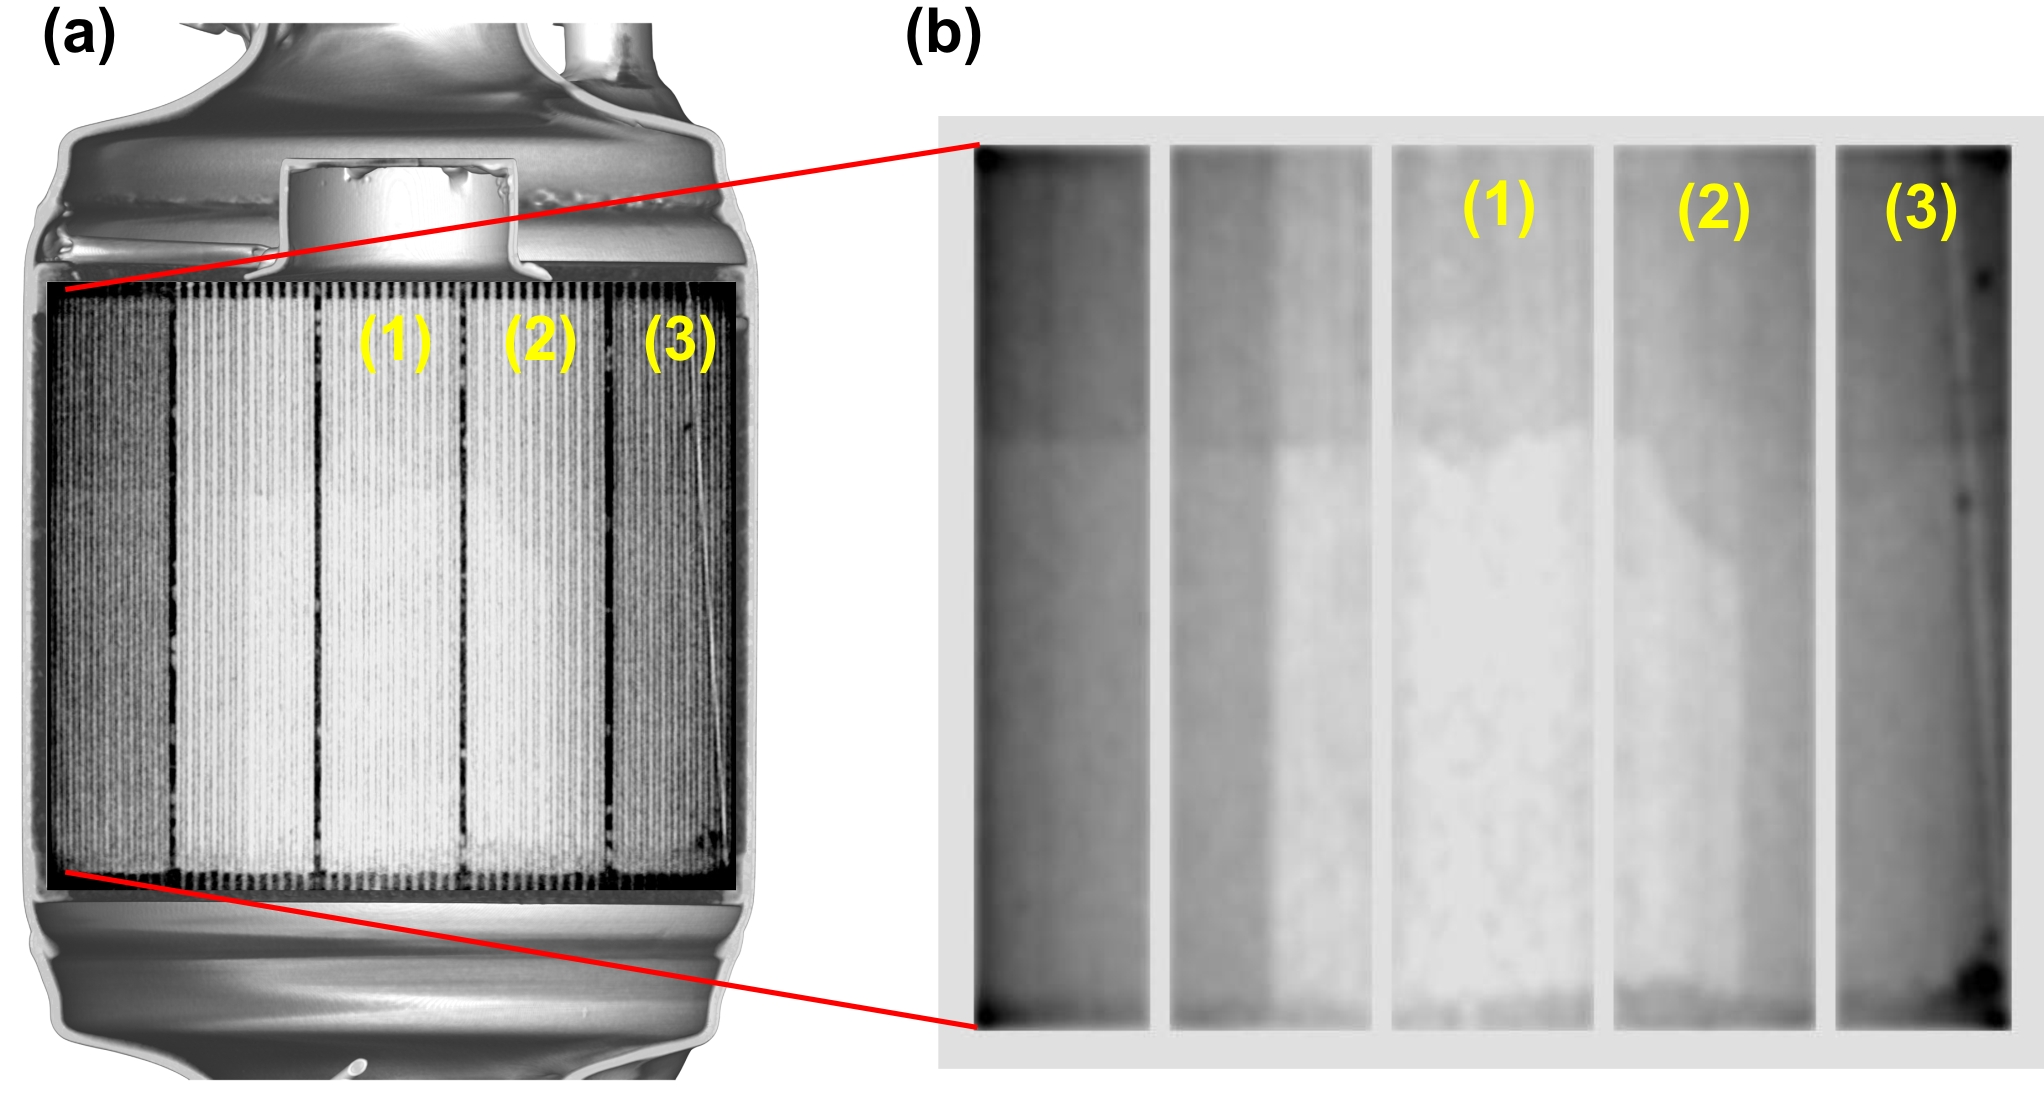 Analysis of tomography data:<br> (a) Vertical, central section through the diesel particulate filter. The outer areas are more heavily loaded (darker) with soot than the inner areas, which are protected by the cover. <br> (b) the boundaries between the loaded and unloaded filter are clearly seen as the two sharp vertical lines.   Similarly, the horizontal line seen in the upper third is caused by the catalytic zone coating.